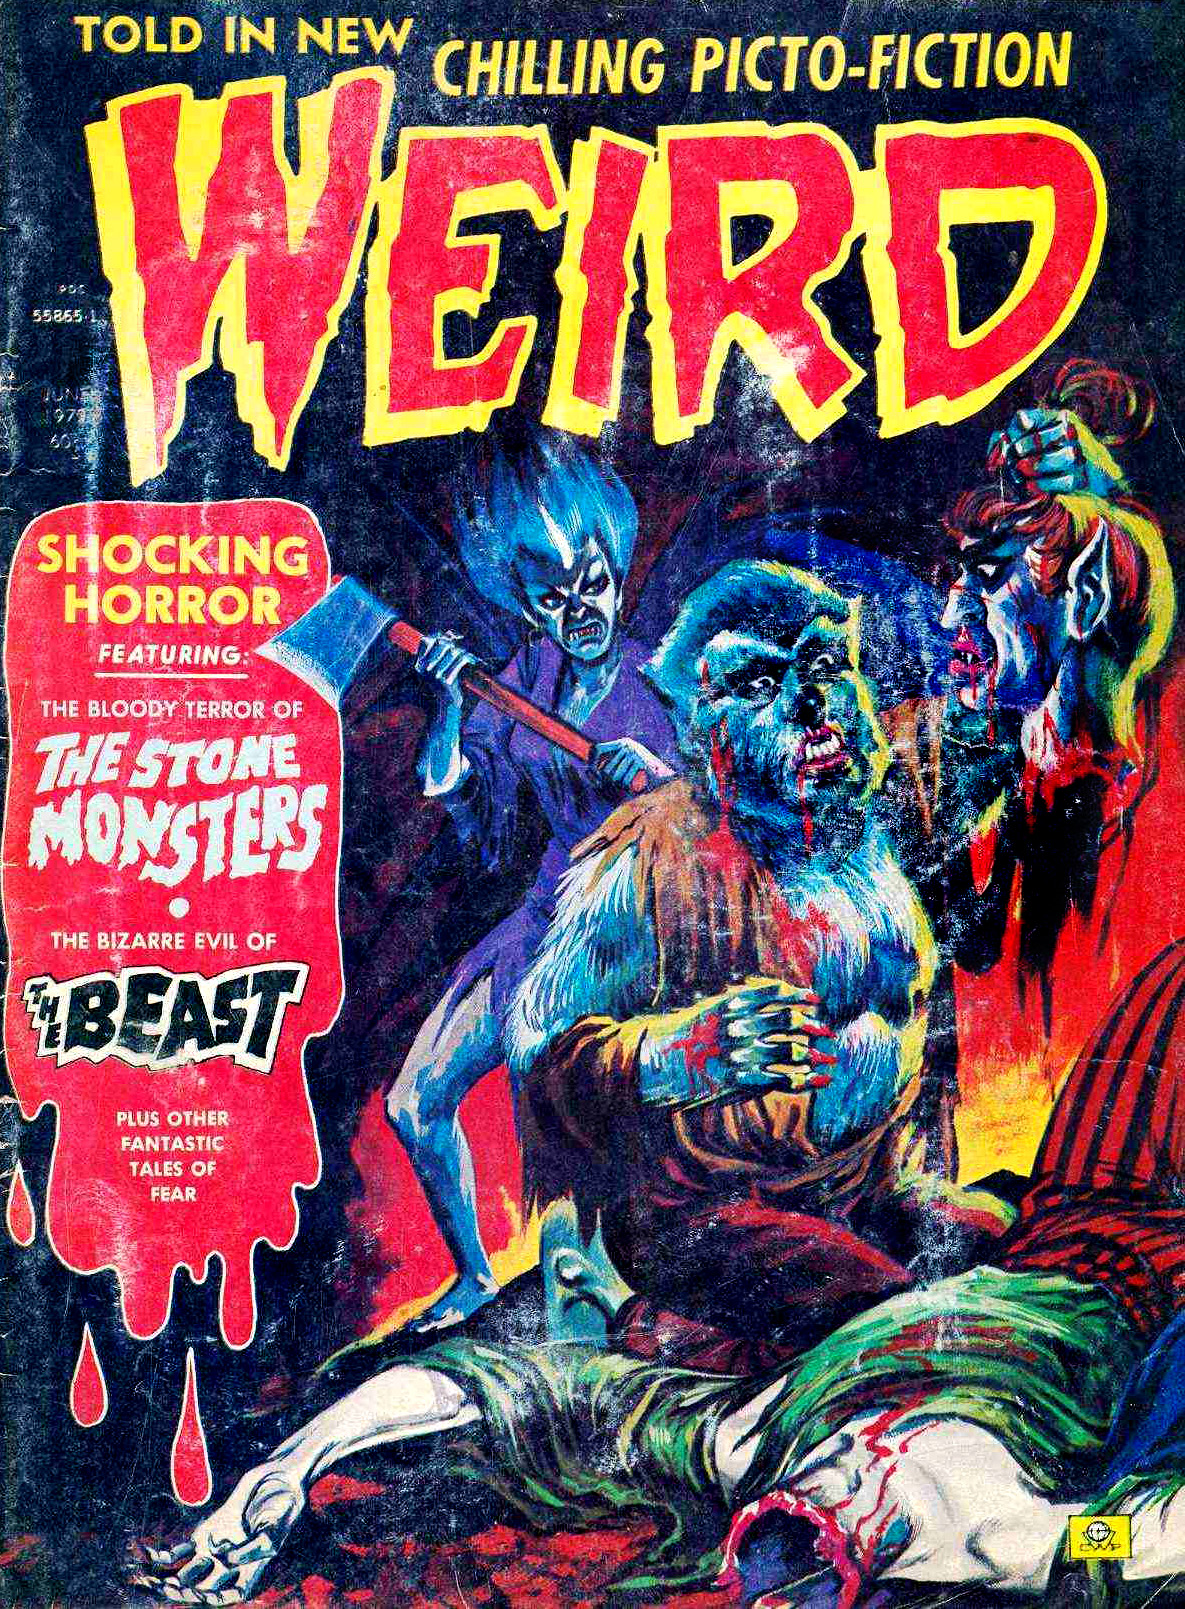 Weird Vol. 06 #4 (Eerie Publications, 1972)